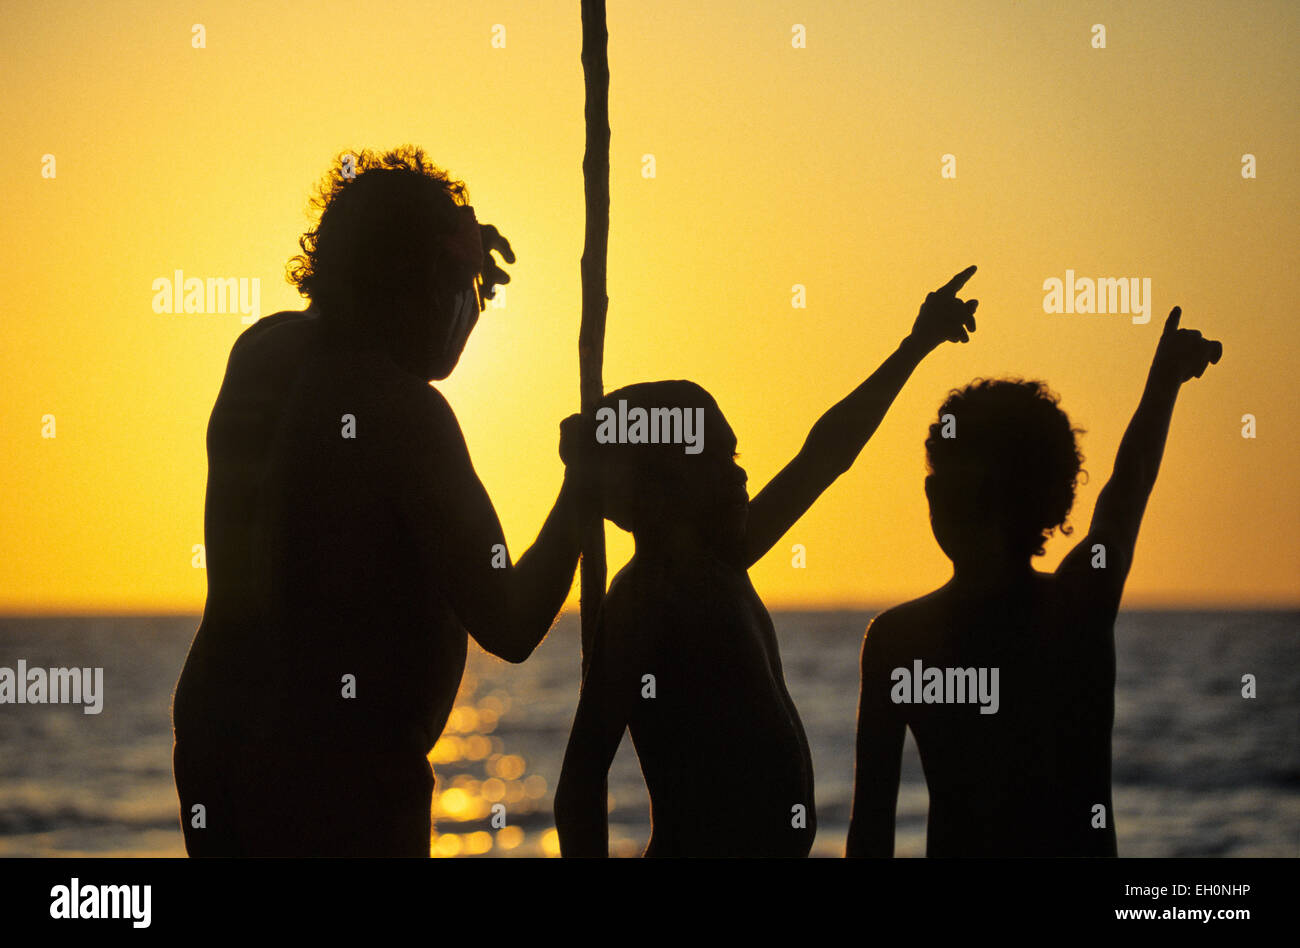 Aboriginal with a pole and children pointing at the sky at sunset, Darwin, Australia Stock Photo